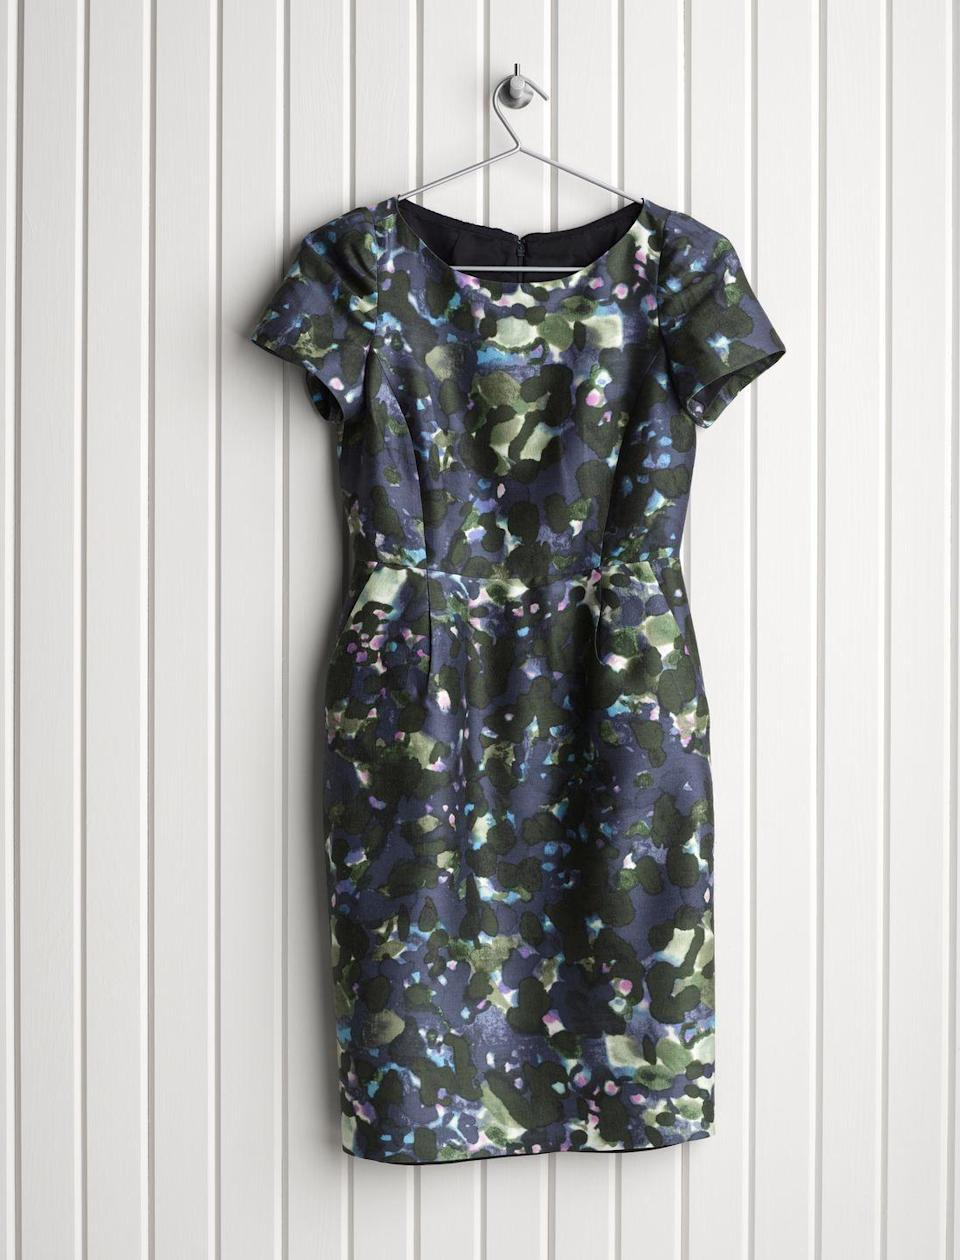 "<p>Those annoying things are always causing dents in your favorite dresses and getting tangled up in your freshly <a href=""https://www.countryliving.com/home-maintenance/organization/g3143/diy-closet-organizers/"" rel=""nofollow noopener"" target=""_blank"" data-ylk=""slk:organized closet"" class=""link rapid-noclick-resp"">organized closet</a>. Switch to wood or fabric and upcycle the wire ones into a whimsical <a href=""https://www.countryliving.com/diy-crafts/a40565/how-to-make-a-christmas-wreath-with-hanger/"" rel=""nofollow noopener"" target=""_blank"" data-ylk=""slk:Christmas craft"" class=""link rapid-noclick-resp"">Christmas craft</a>. </p>"